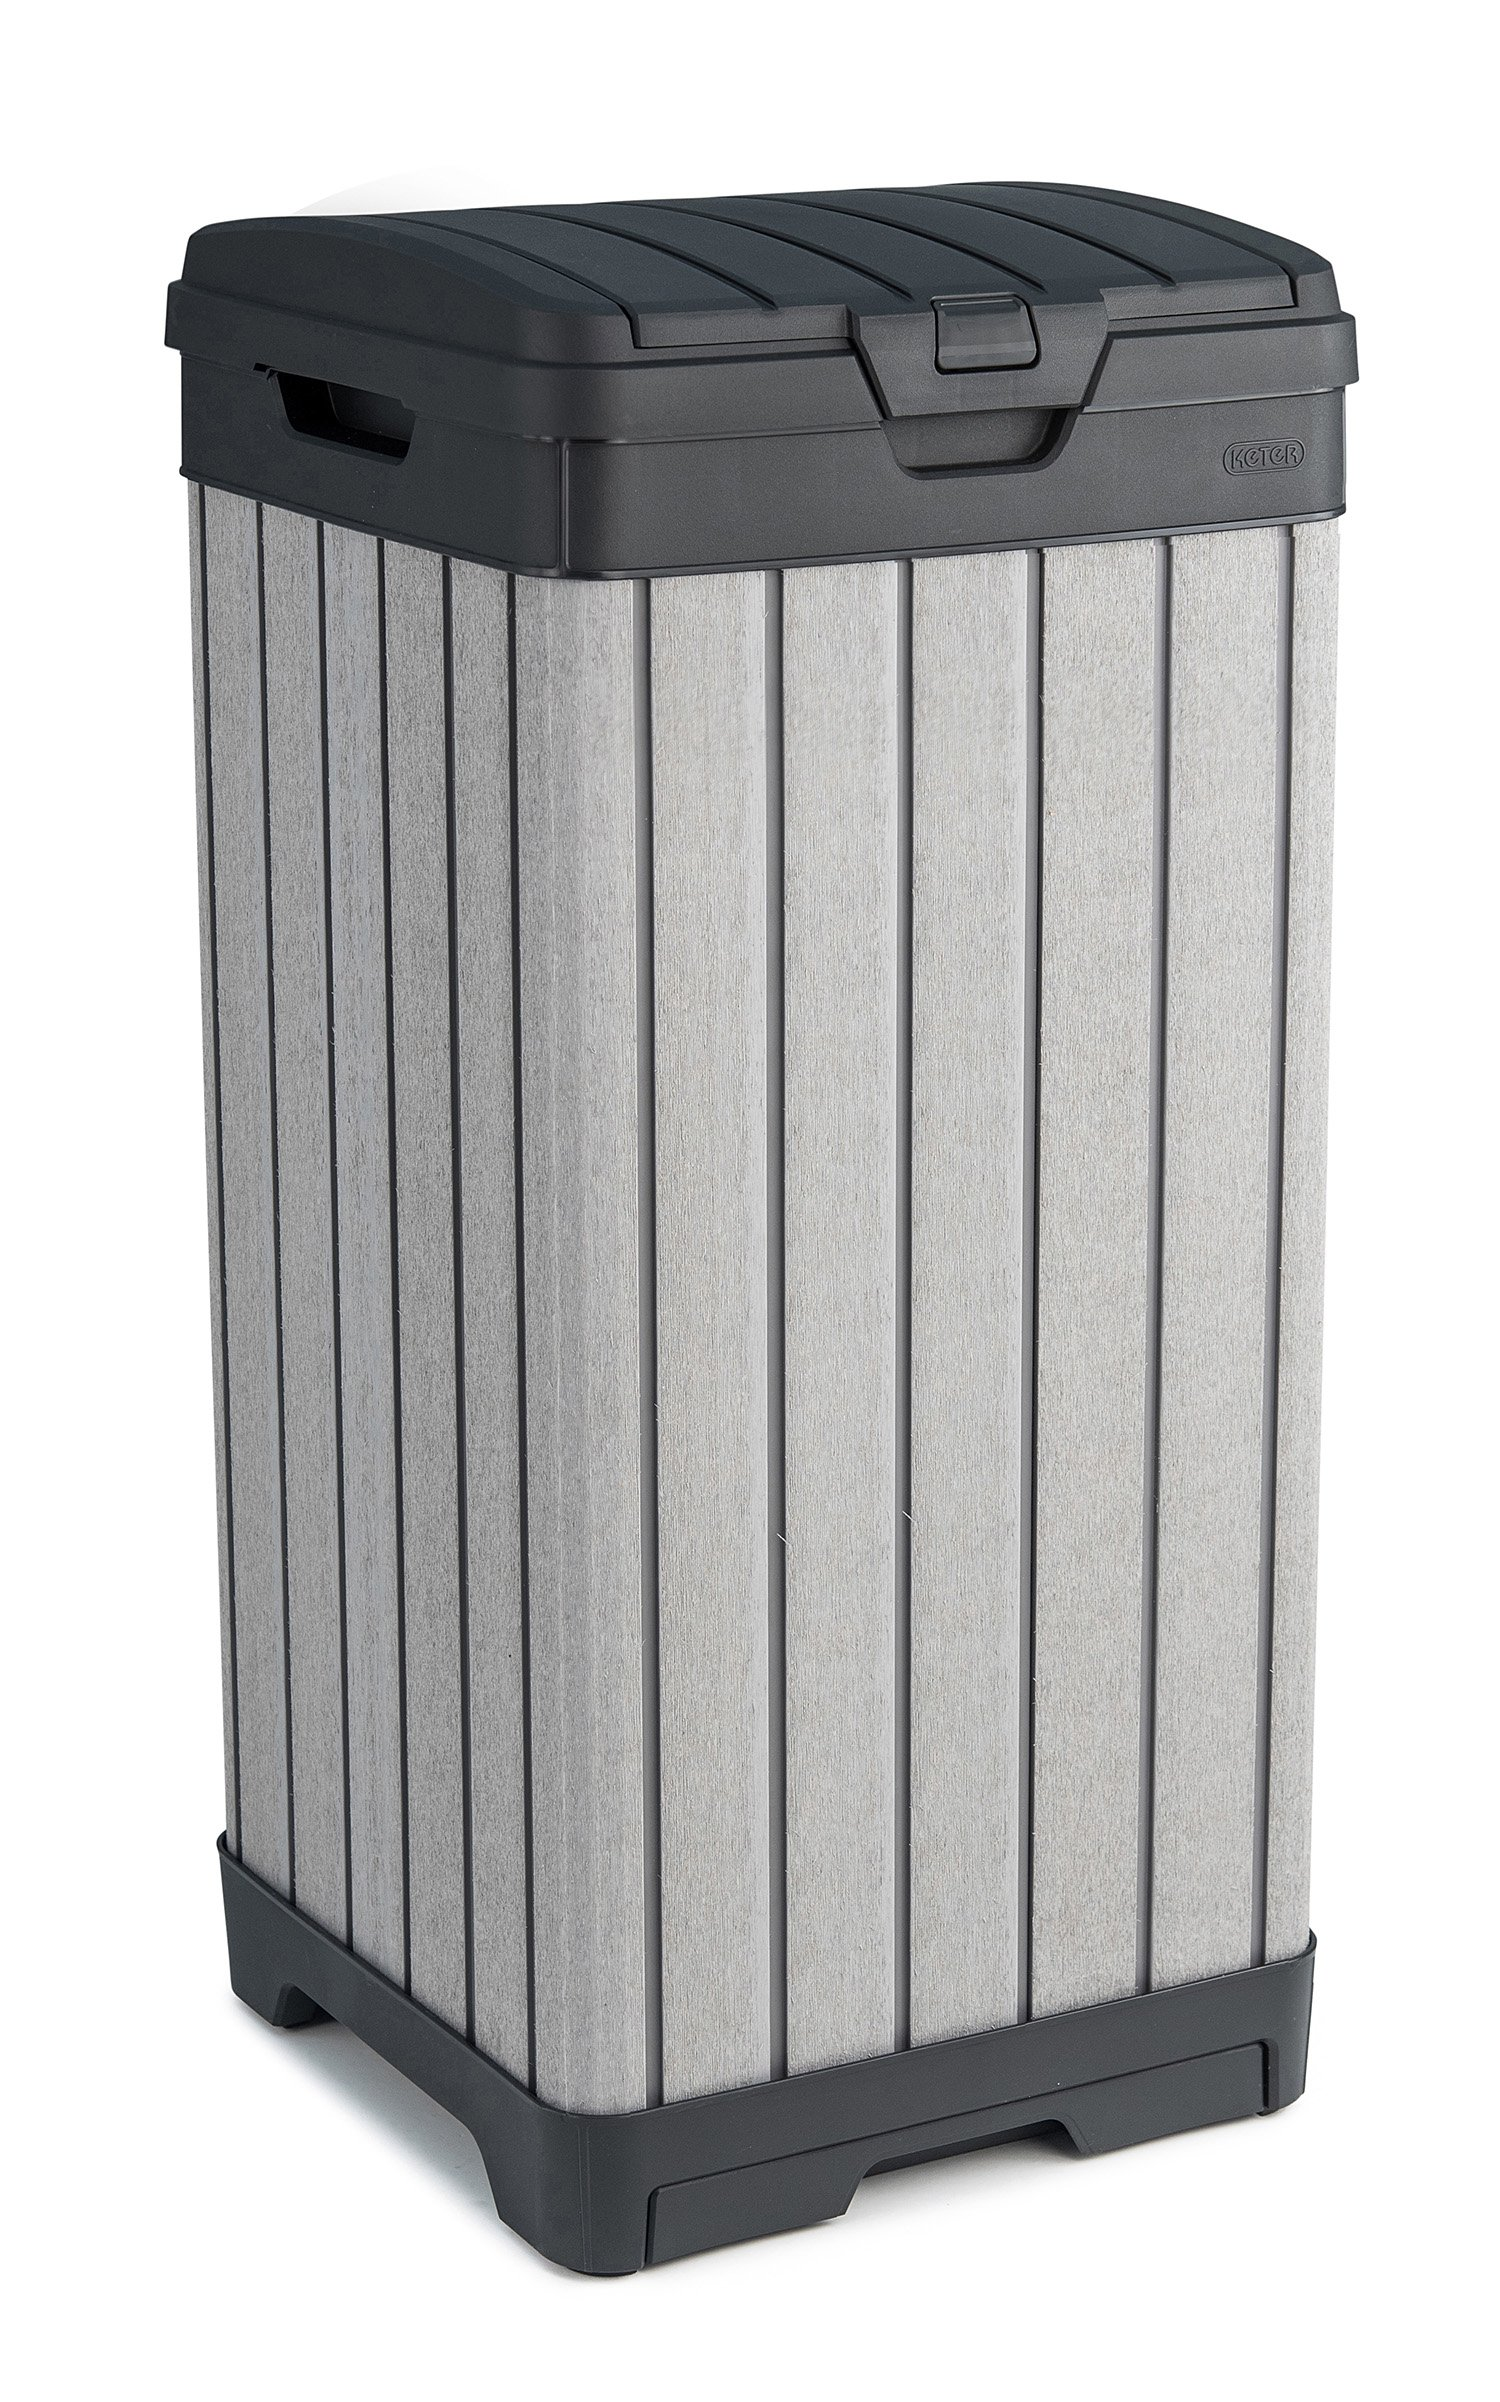 Keter Rockford 38 Gallon Outdoor Trash Can with Lid and Drip Tray for Easy Cleaning, Grey by Keter